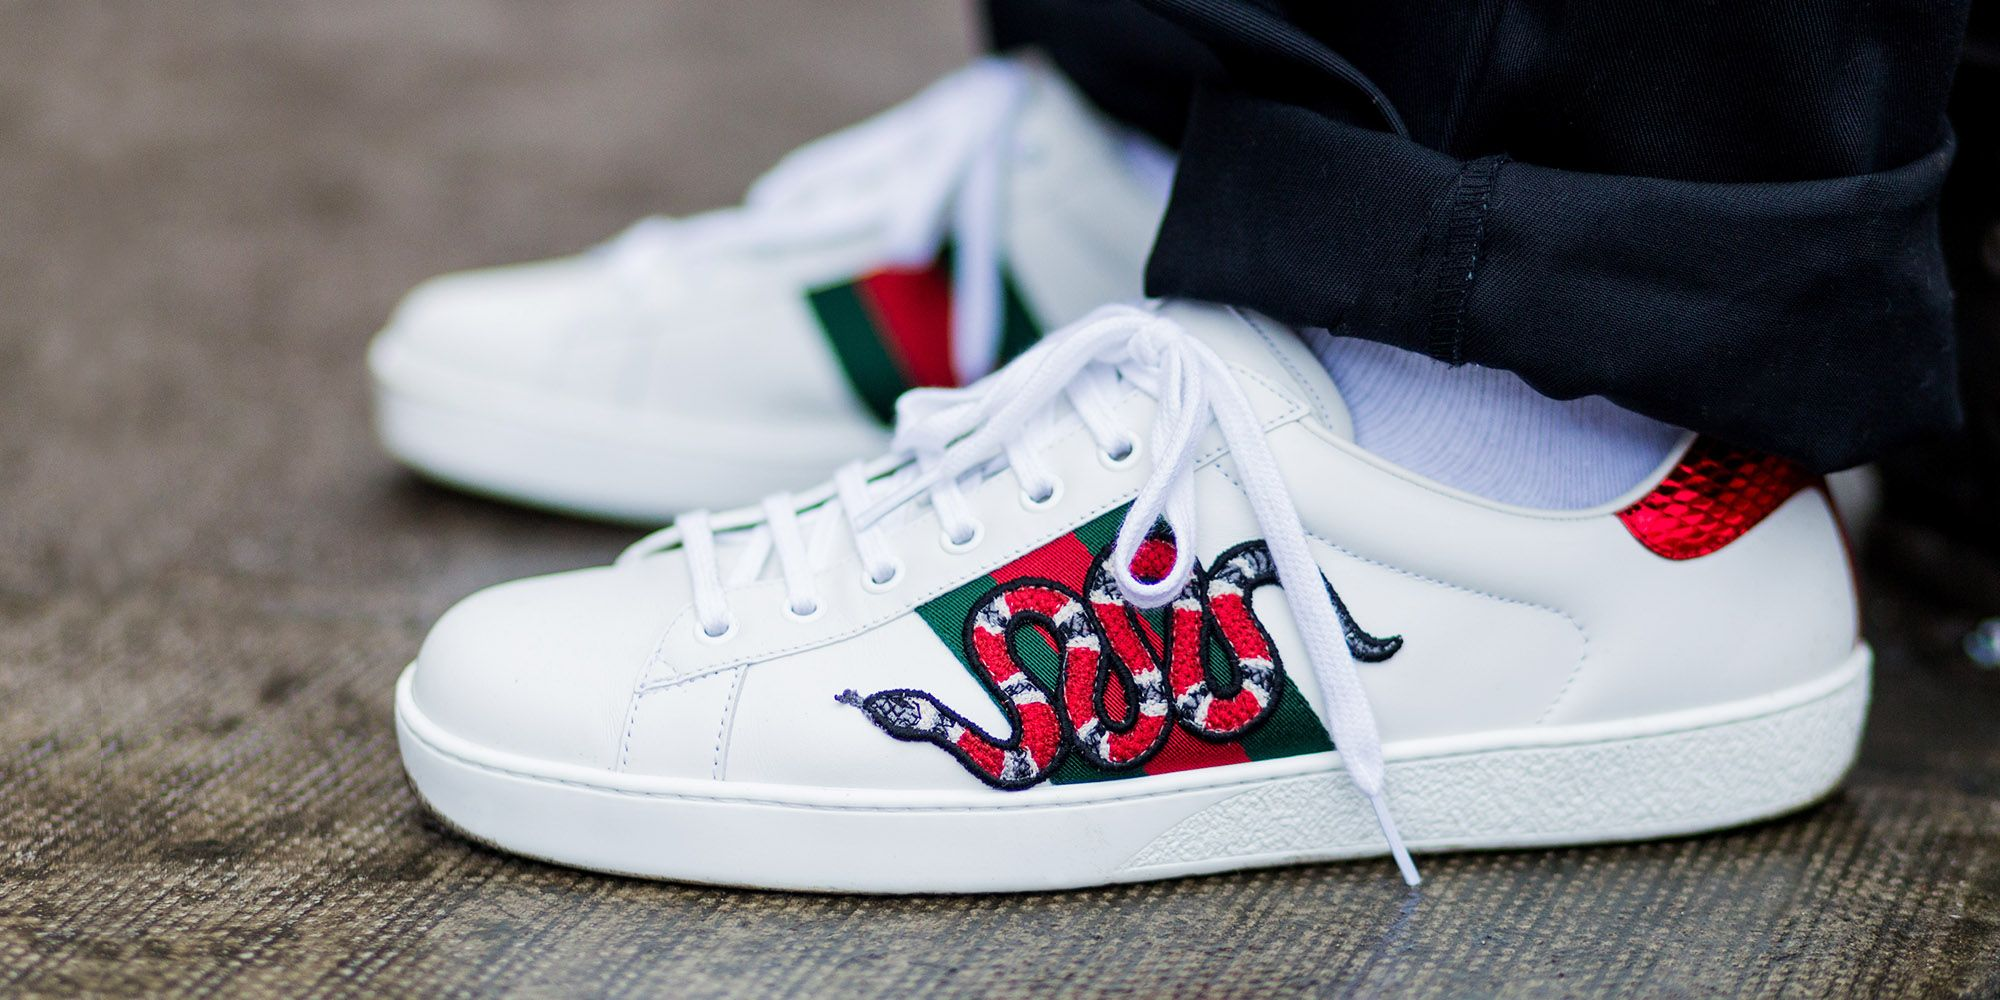 10 Best White Sneakers for Men in 2018